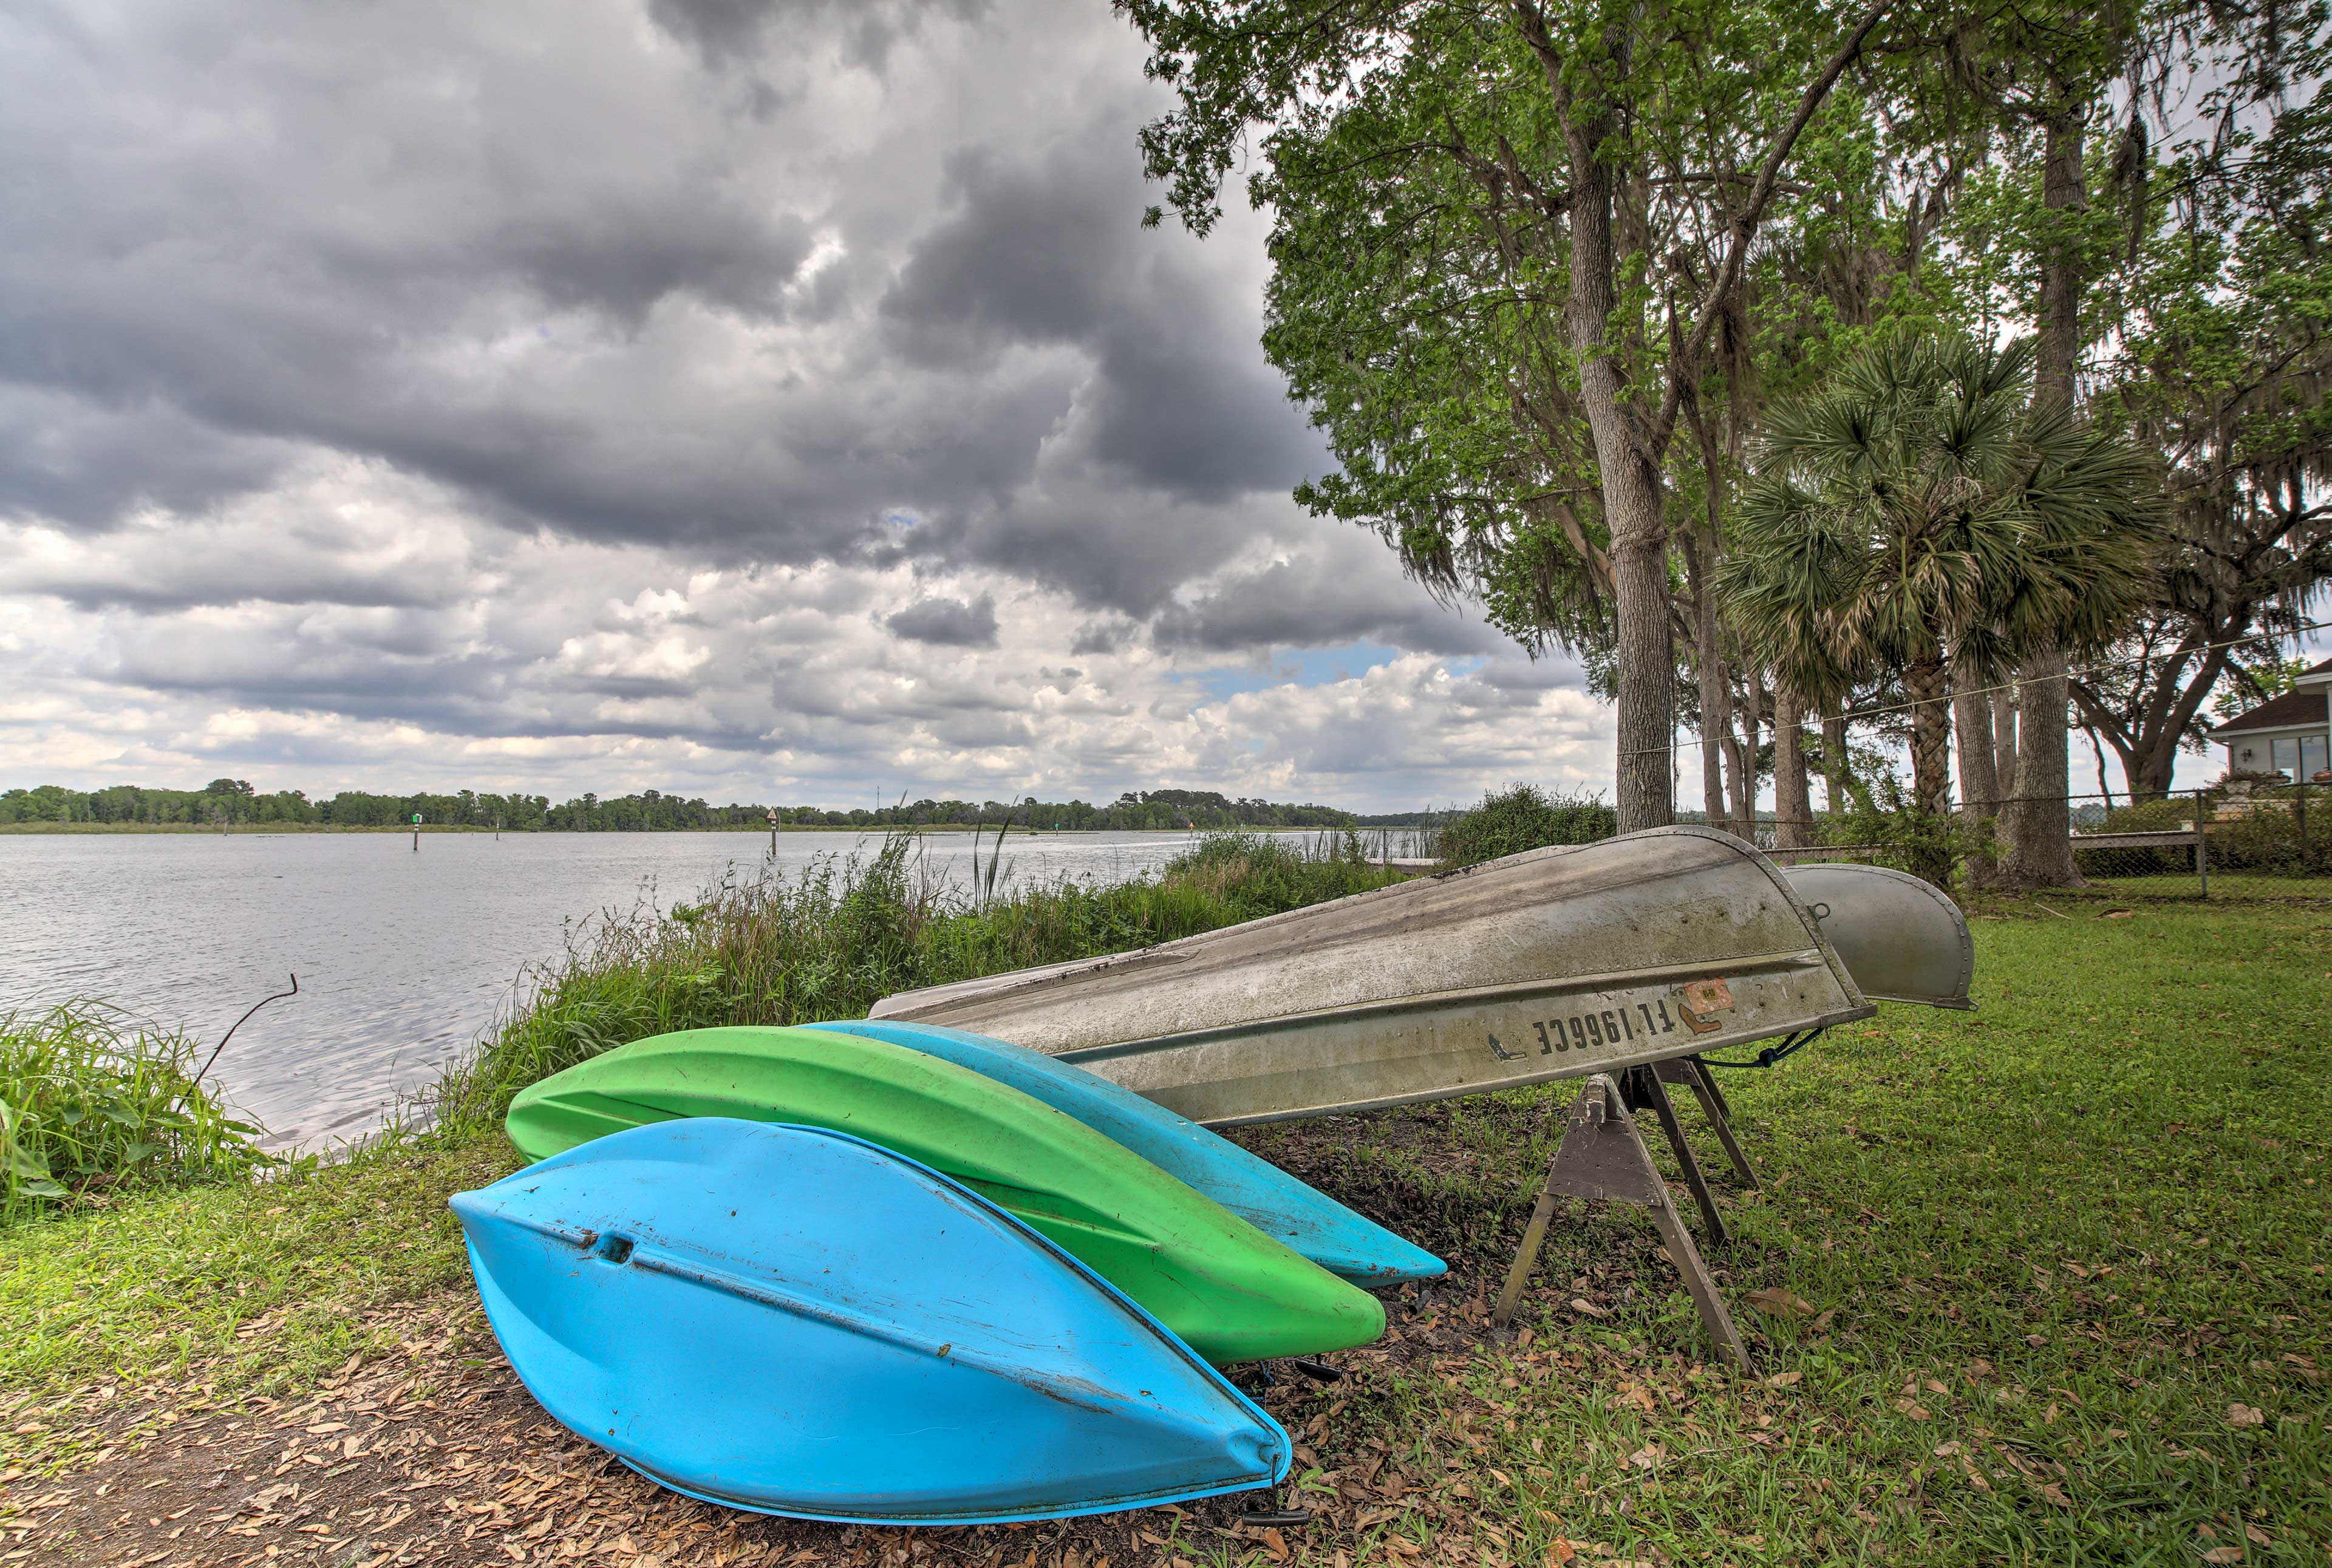 Use the canoe or kayaks to explore the lake!